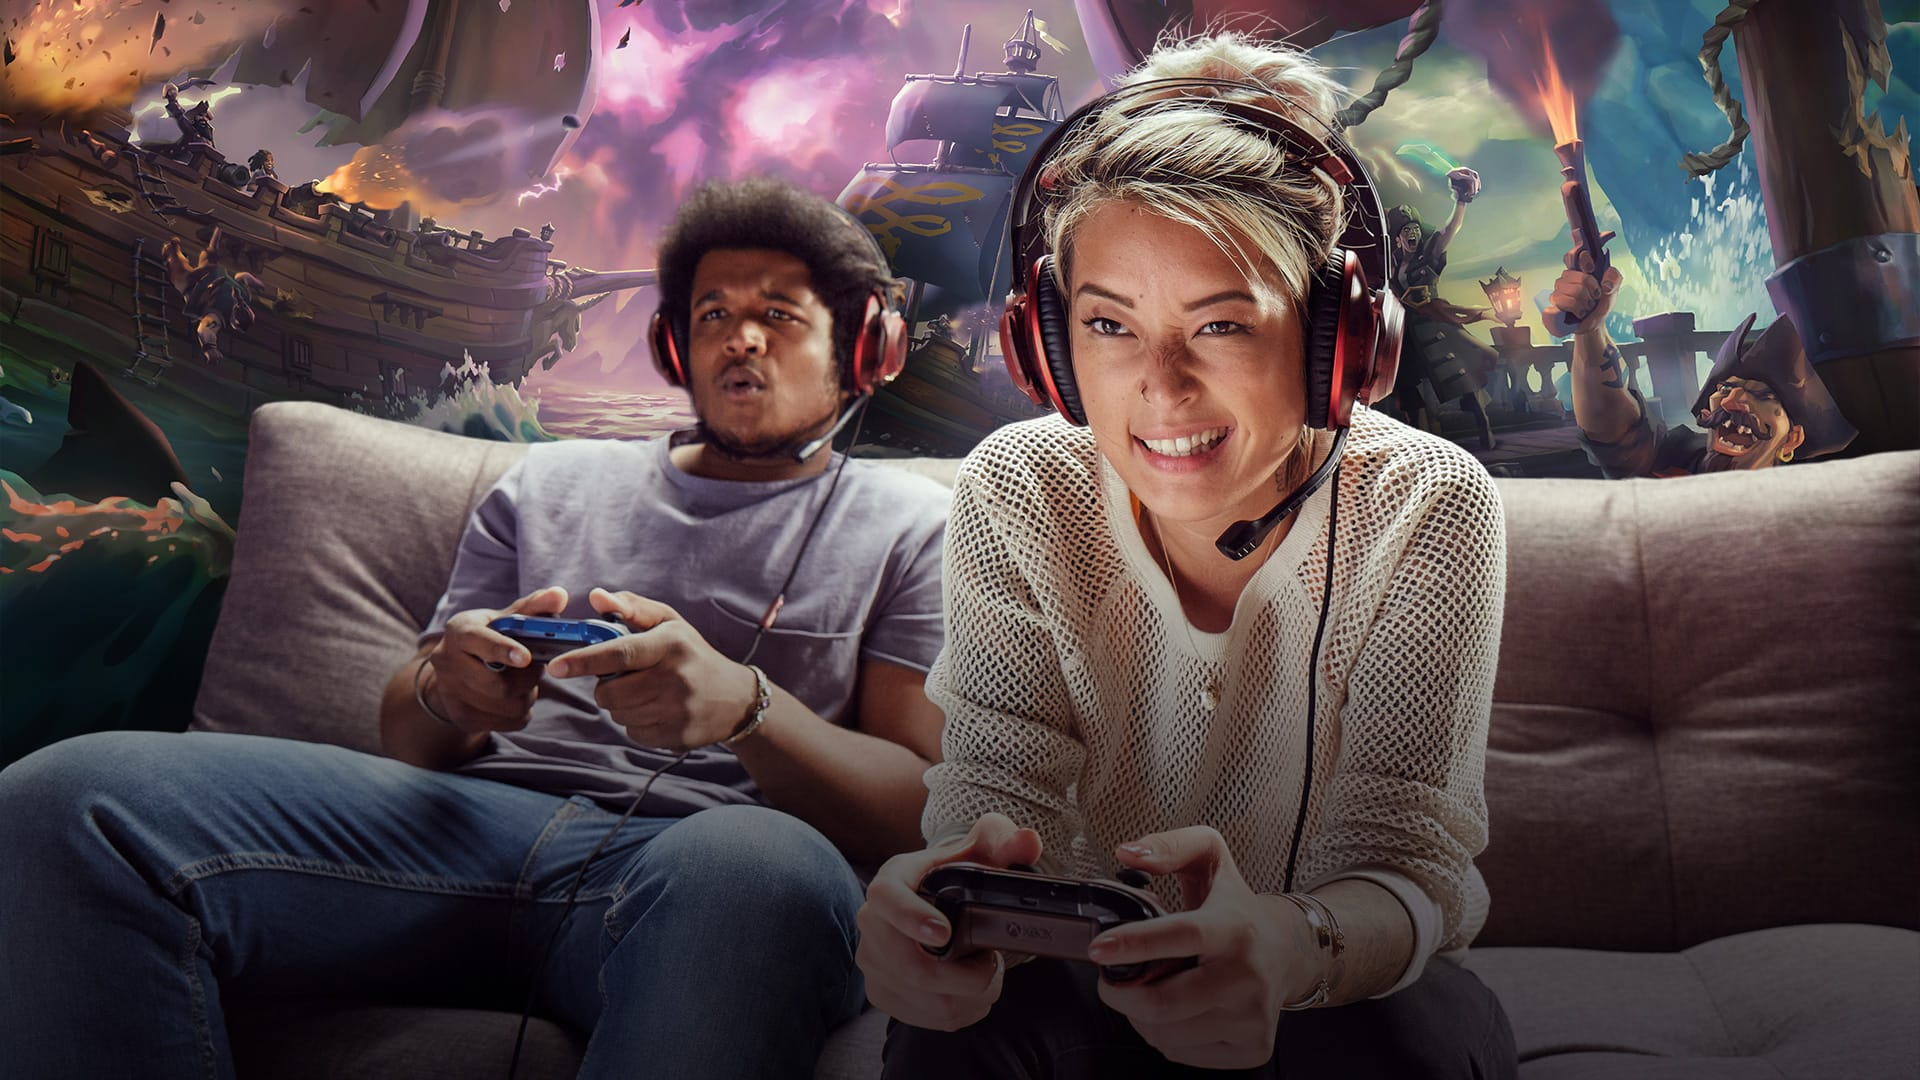 Two people wearing headsets playing Sea of Thieves on a couch